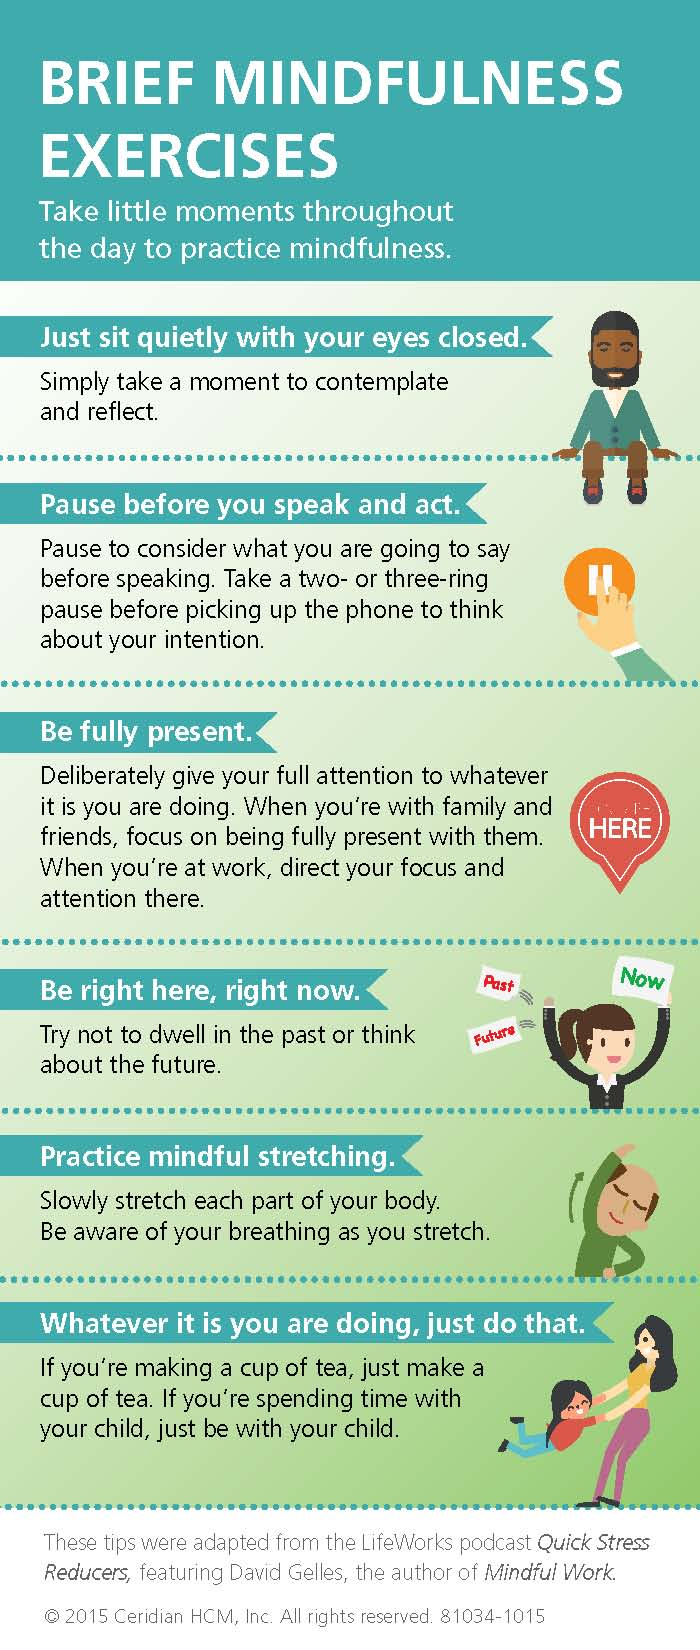 Brief Mindfulness Exercises